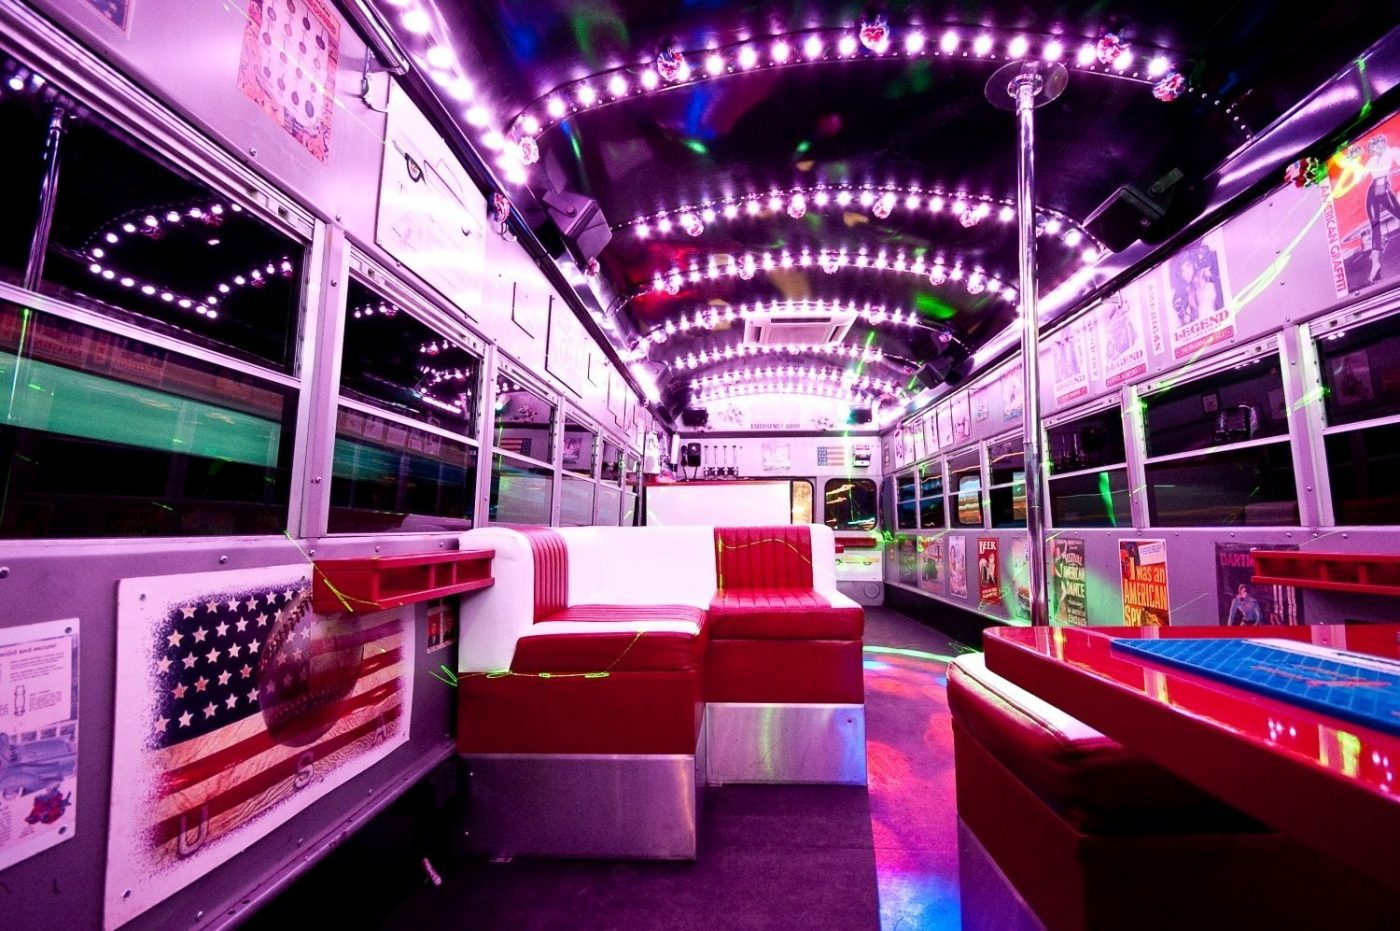 Interior of a School Party Bus in Warsaw